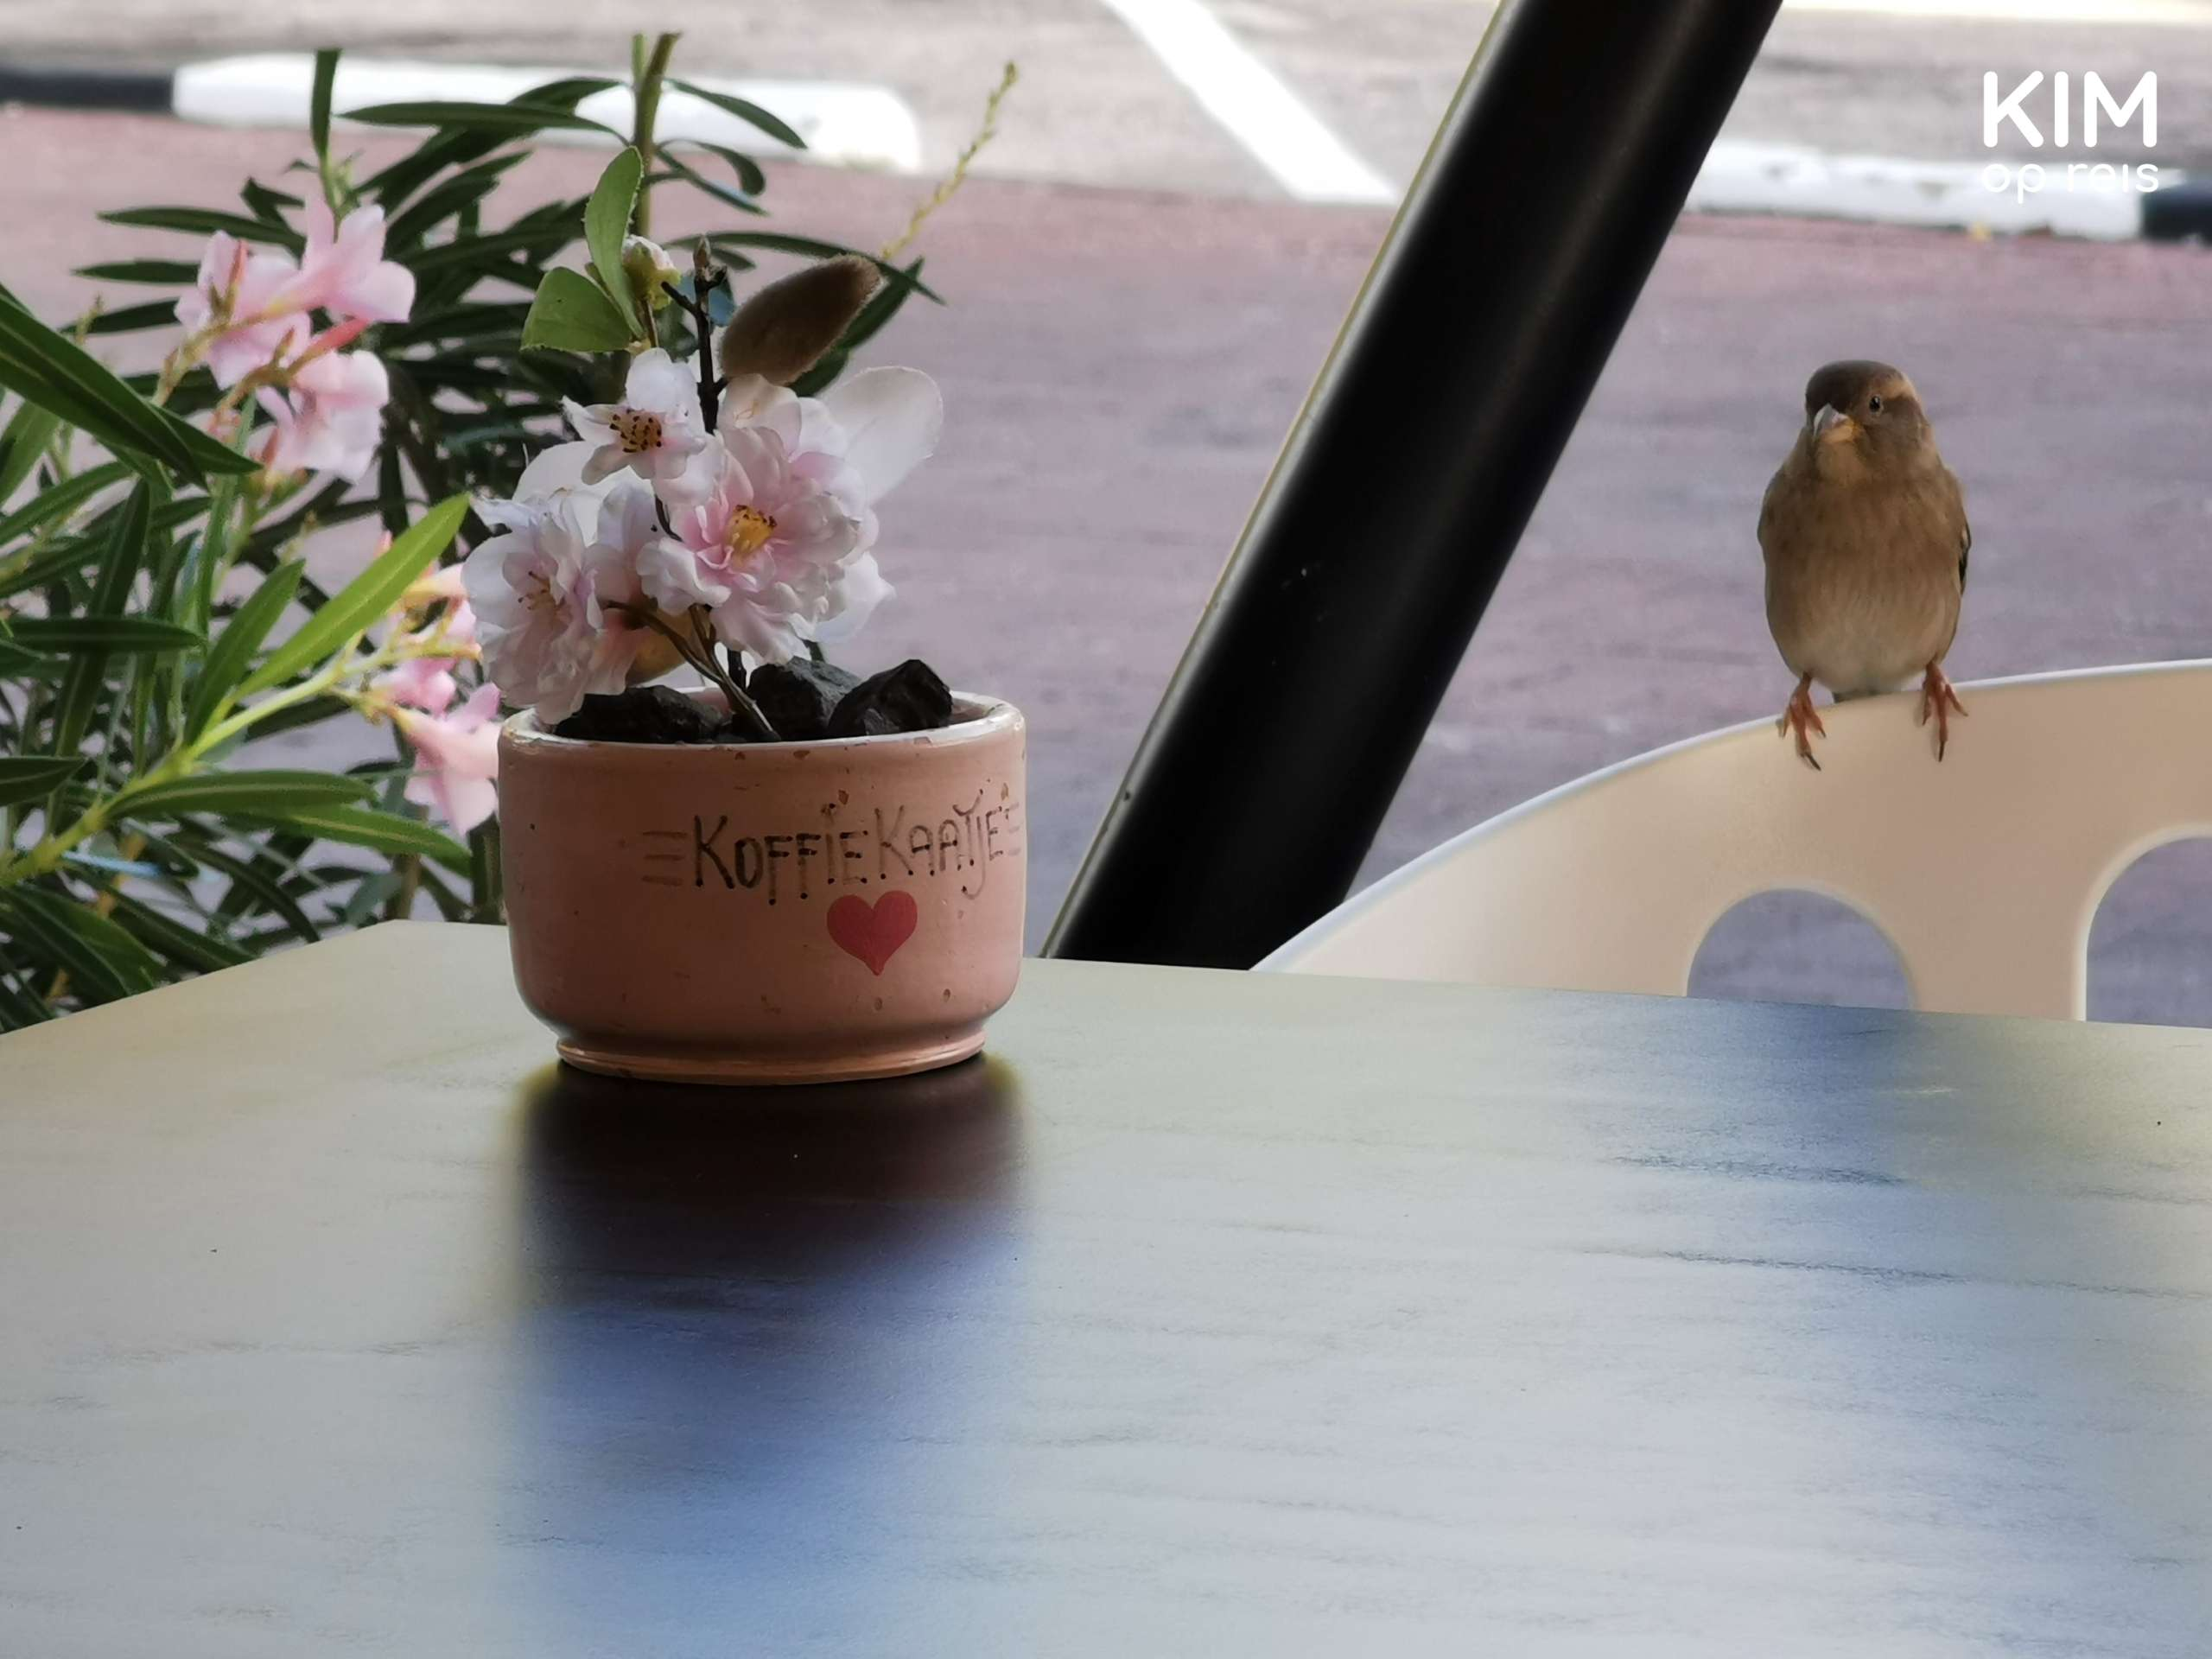 Koffie Kaatje Curaçao: small plant on a table with 'Koffie Kaatje' on the flower pot and a sparrow in the background